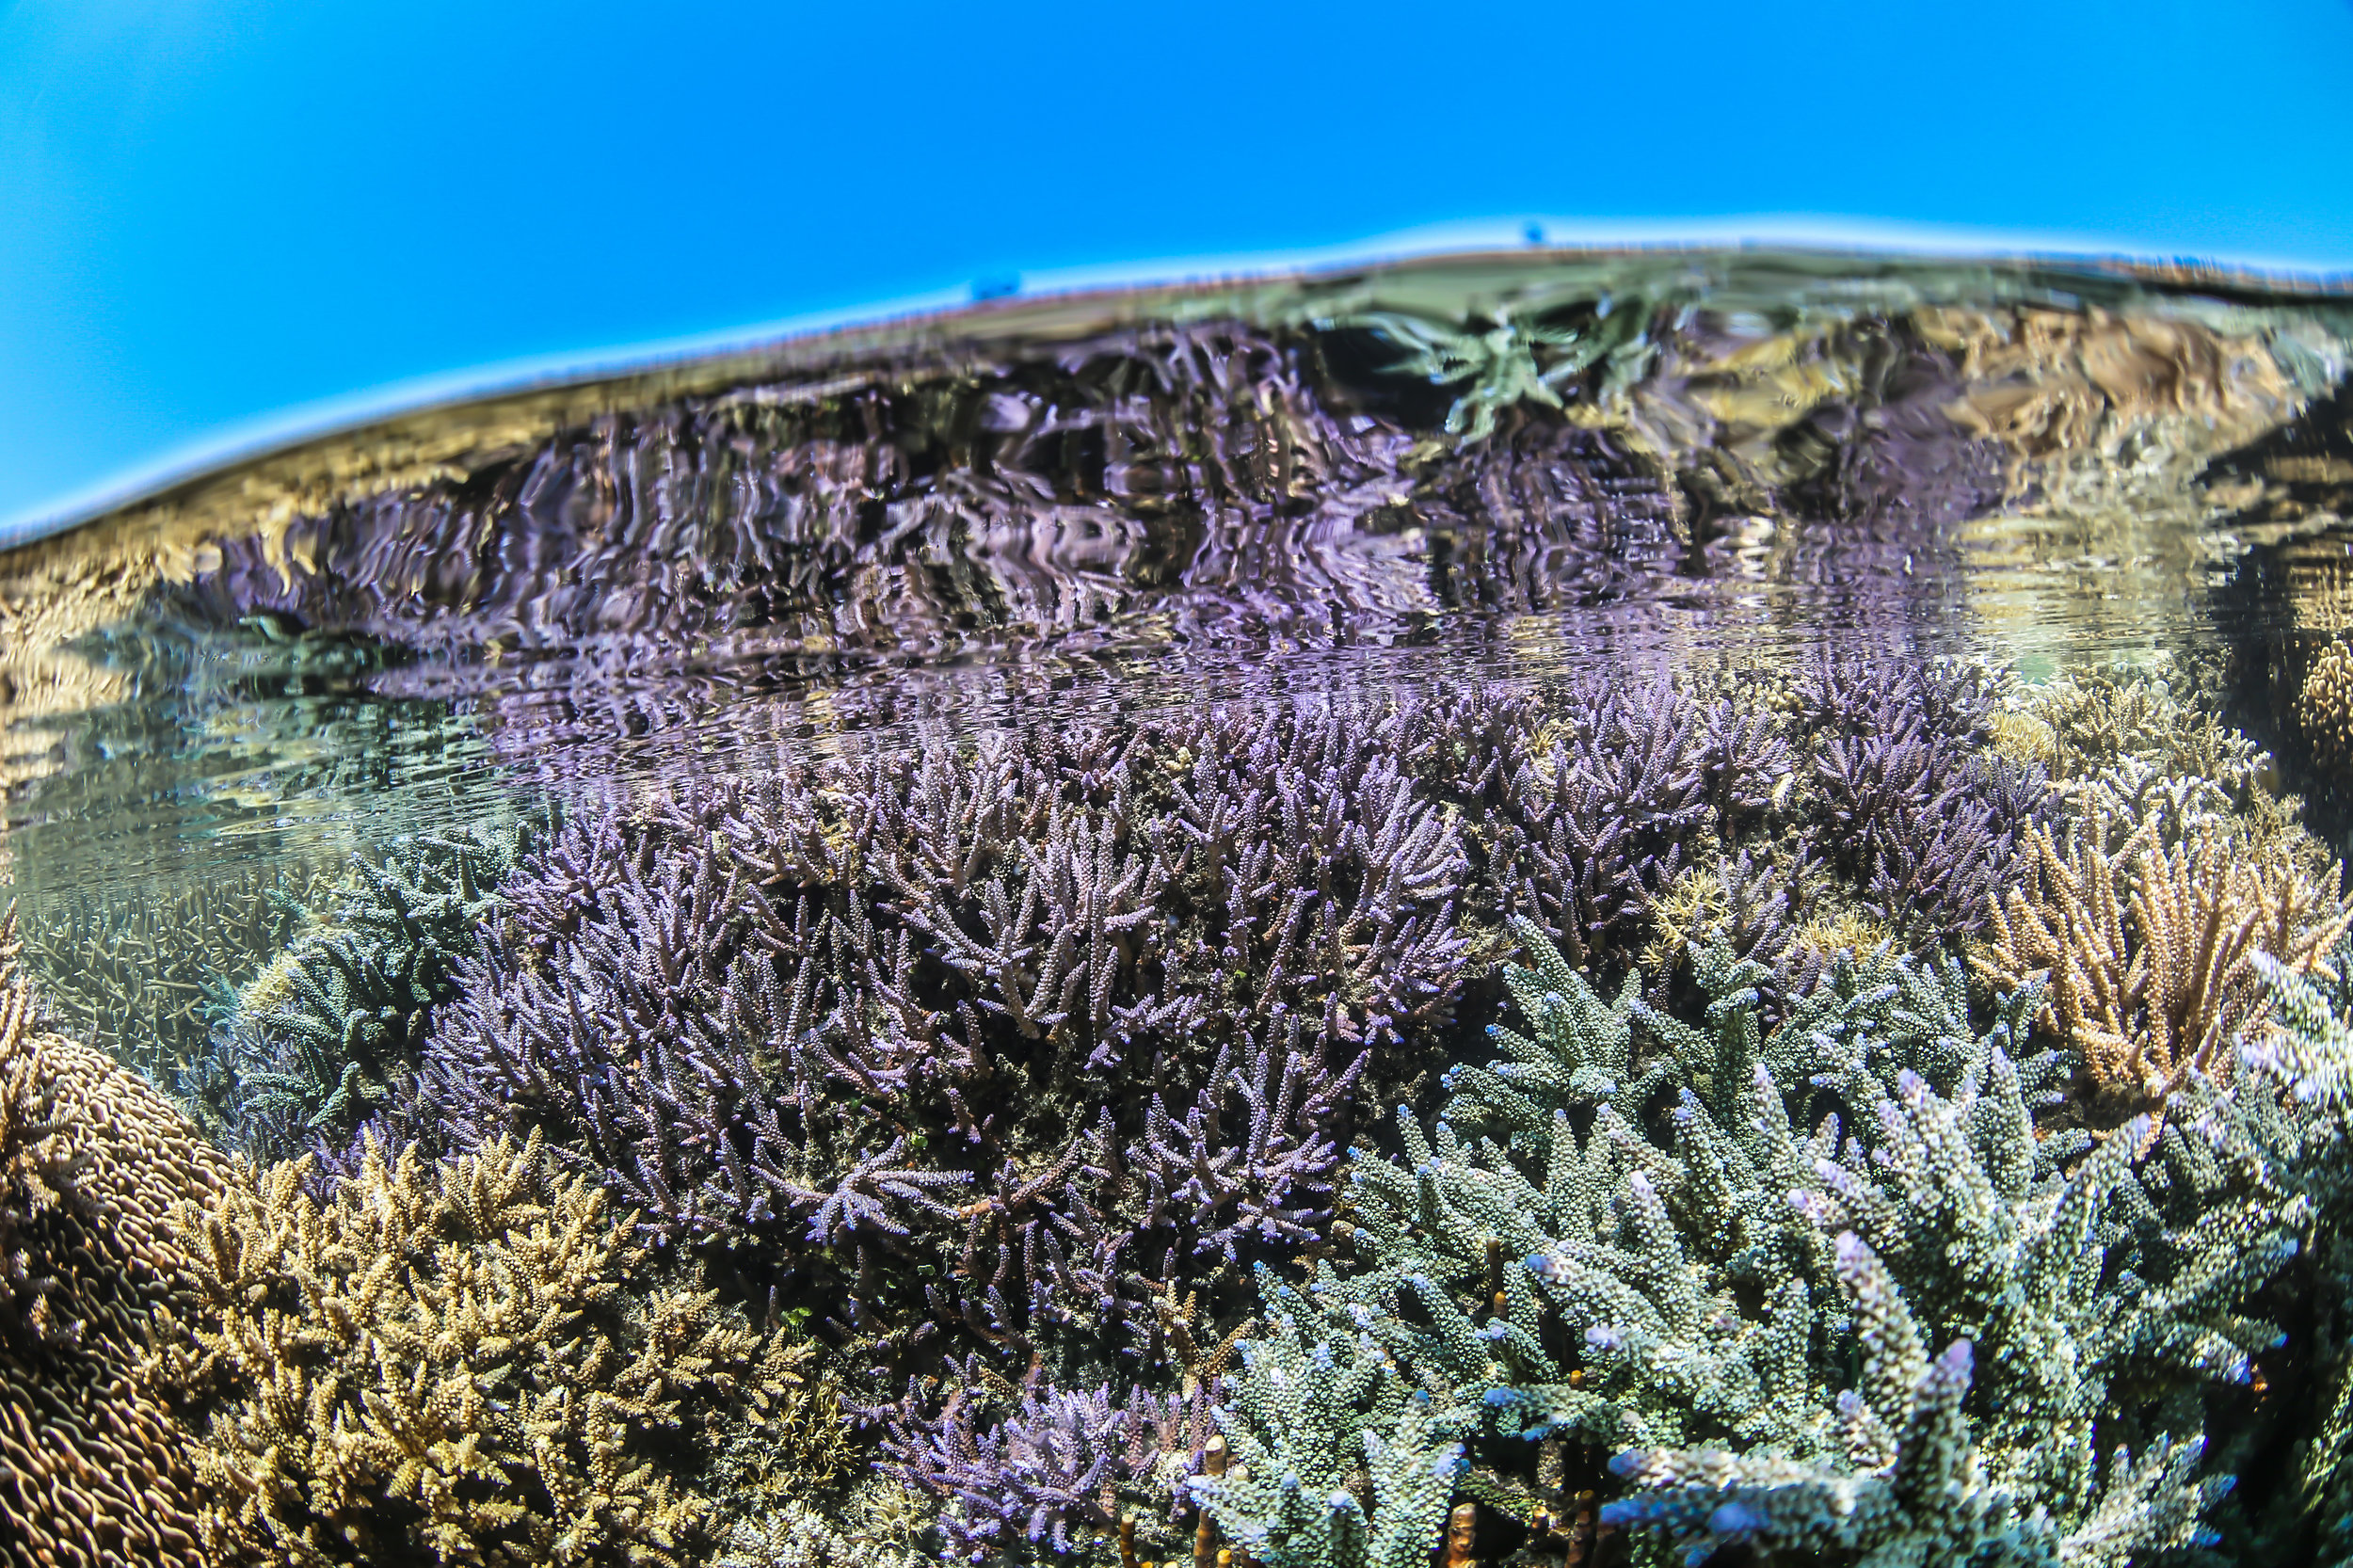 16 - The corals grow in large colonies CREDIT: MArtin COLOGNOLI